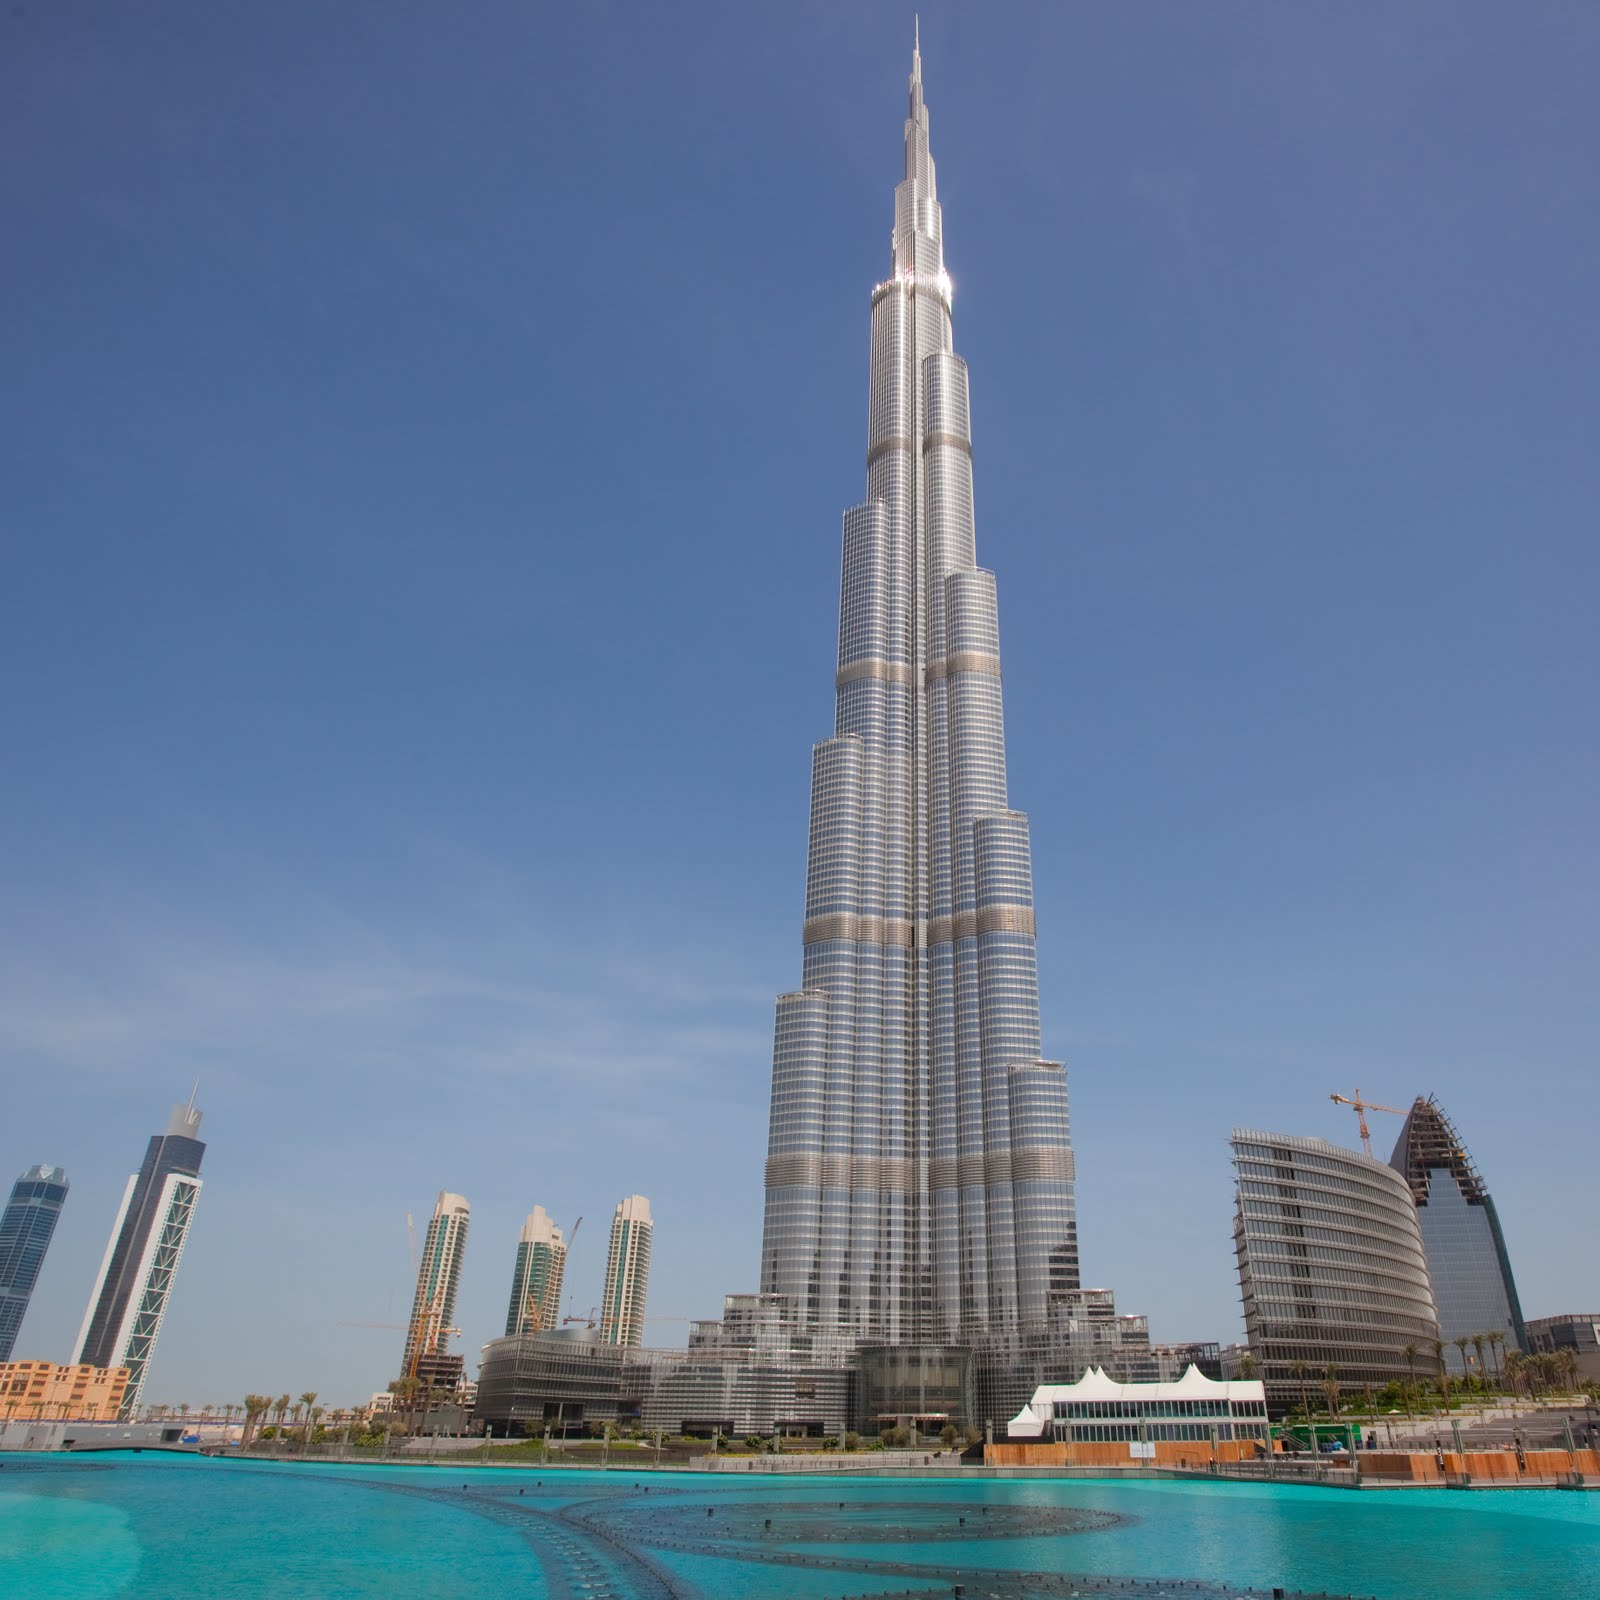 Terry's Travel and Thoughts: The Burj Khalifa in Dubai ...